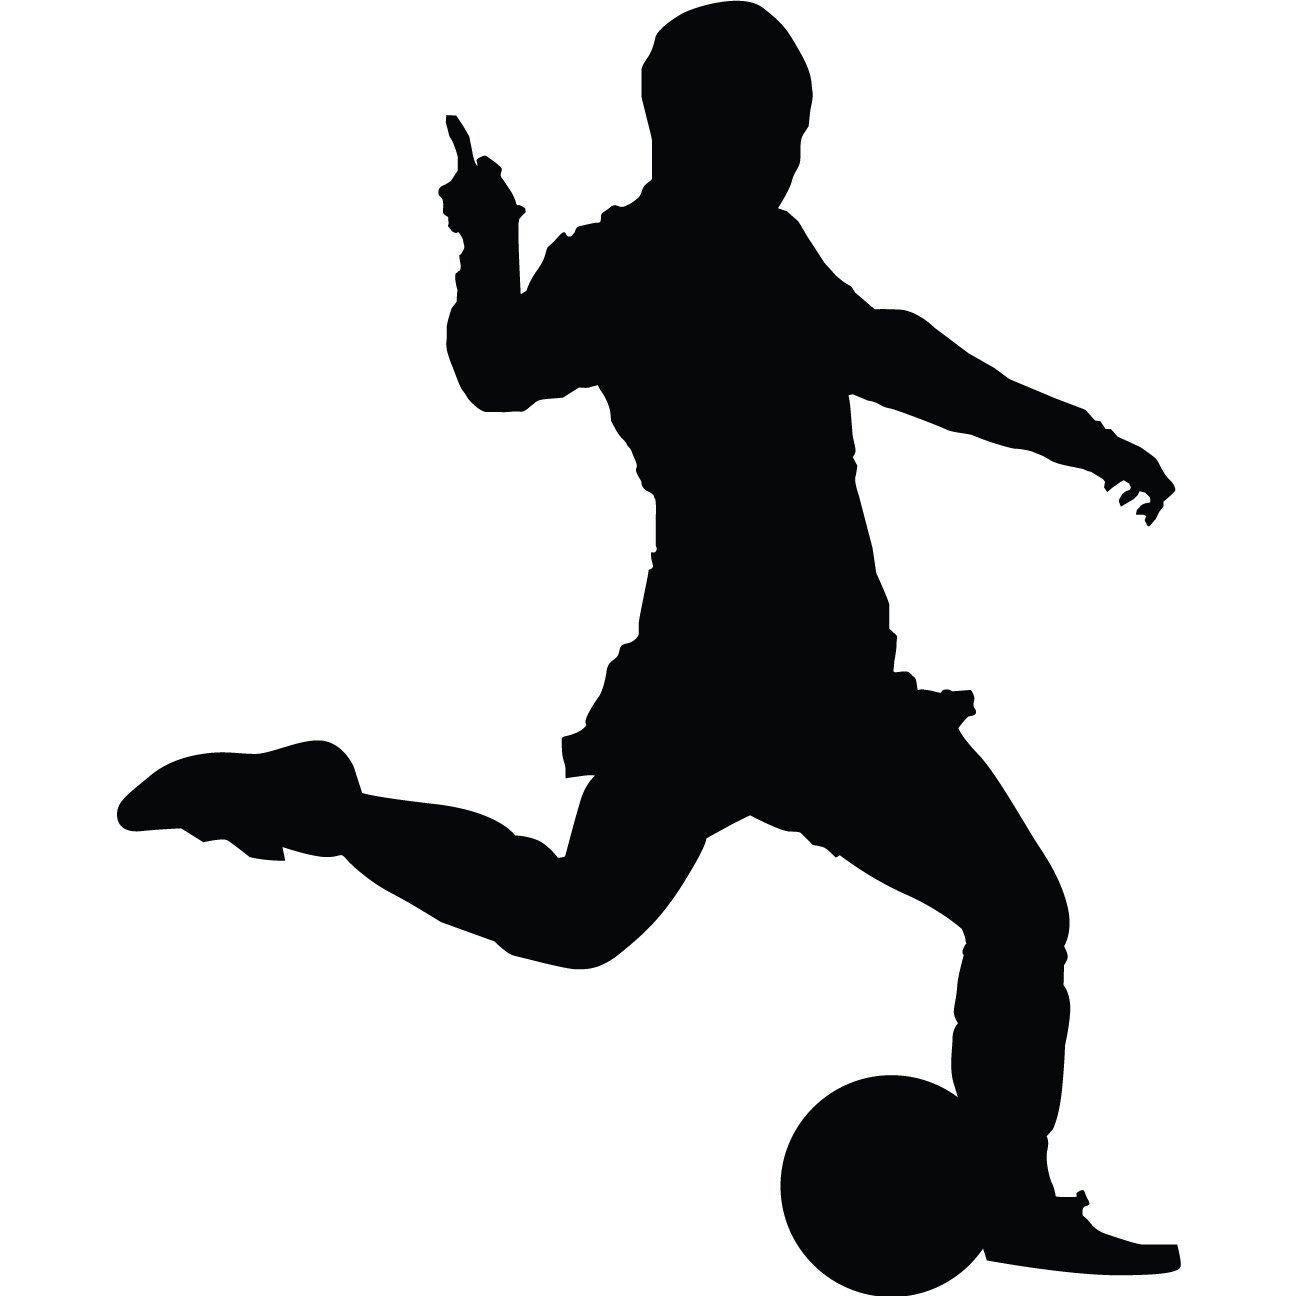 soccer player silhouette football silhouettes design elements soccer silhouette soccer player